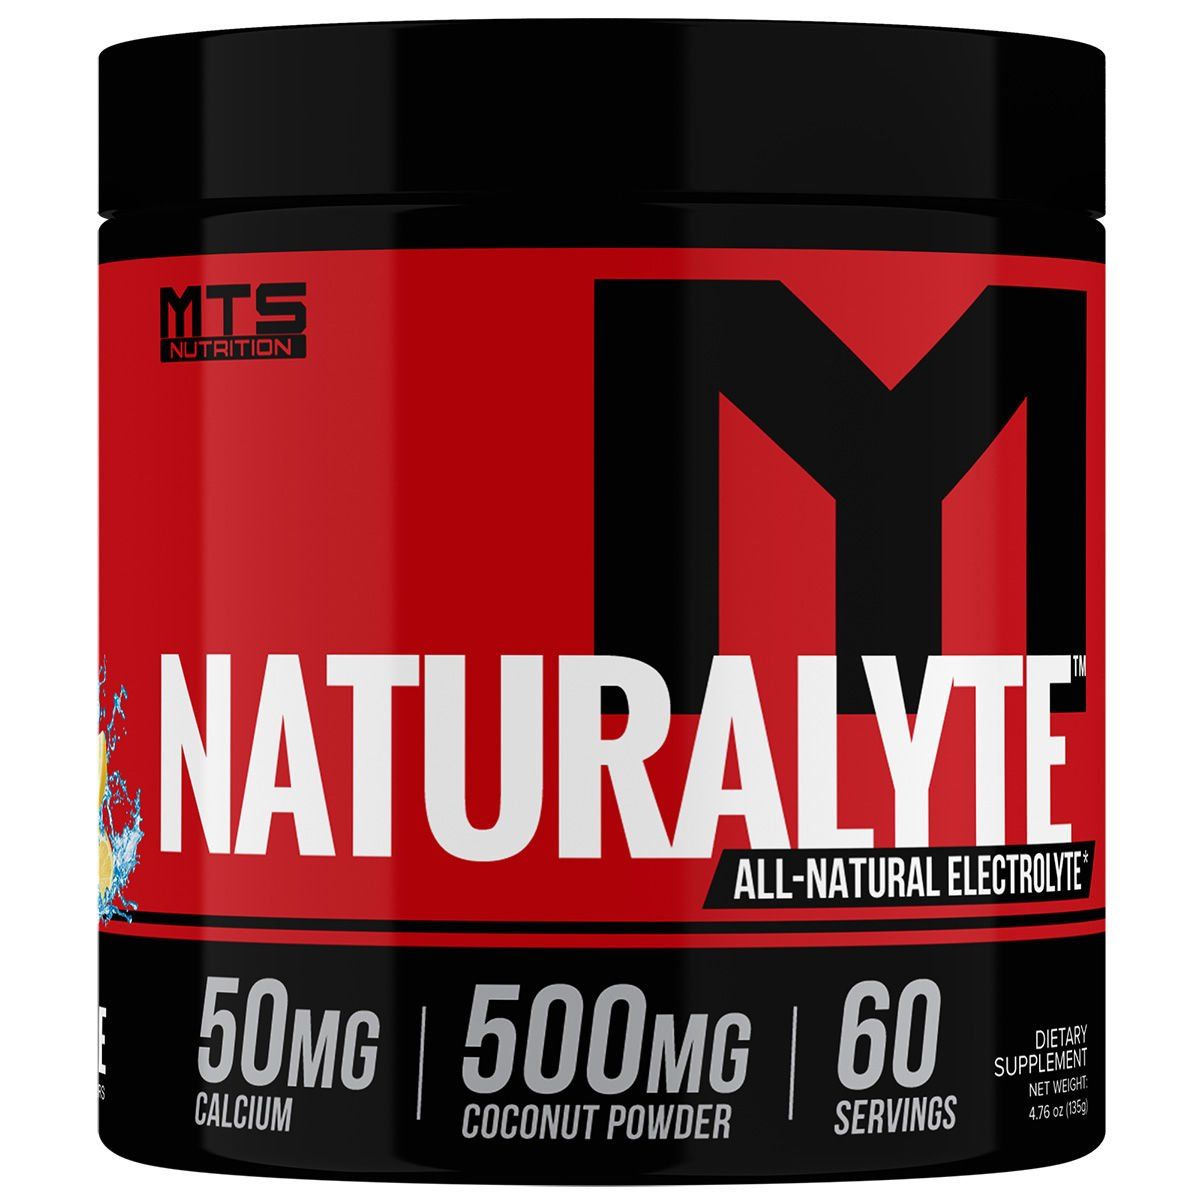 Naturalyte All Natural Electrolyte Powder (60 Servings)